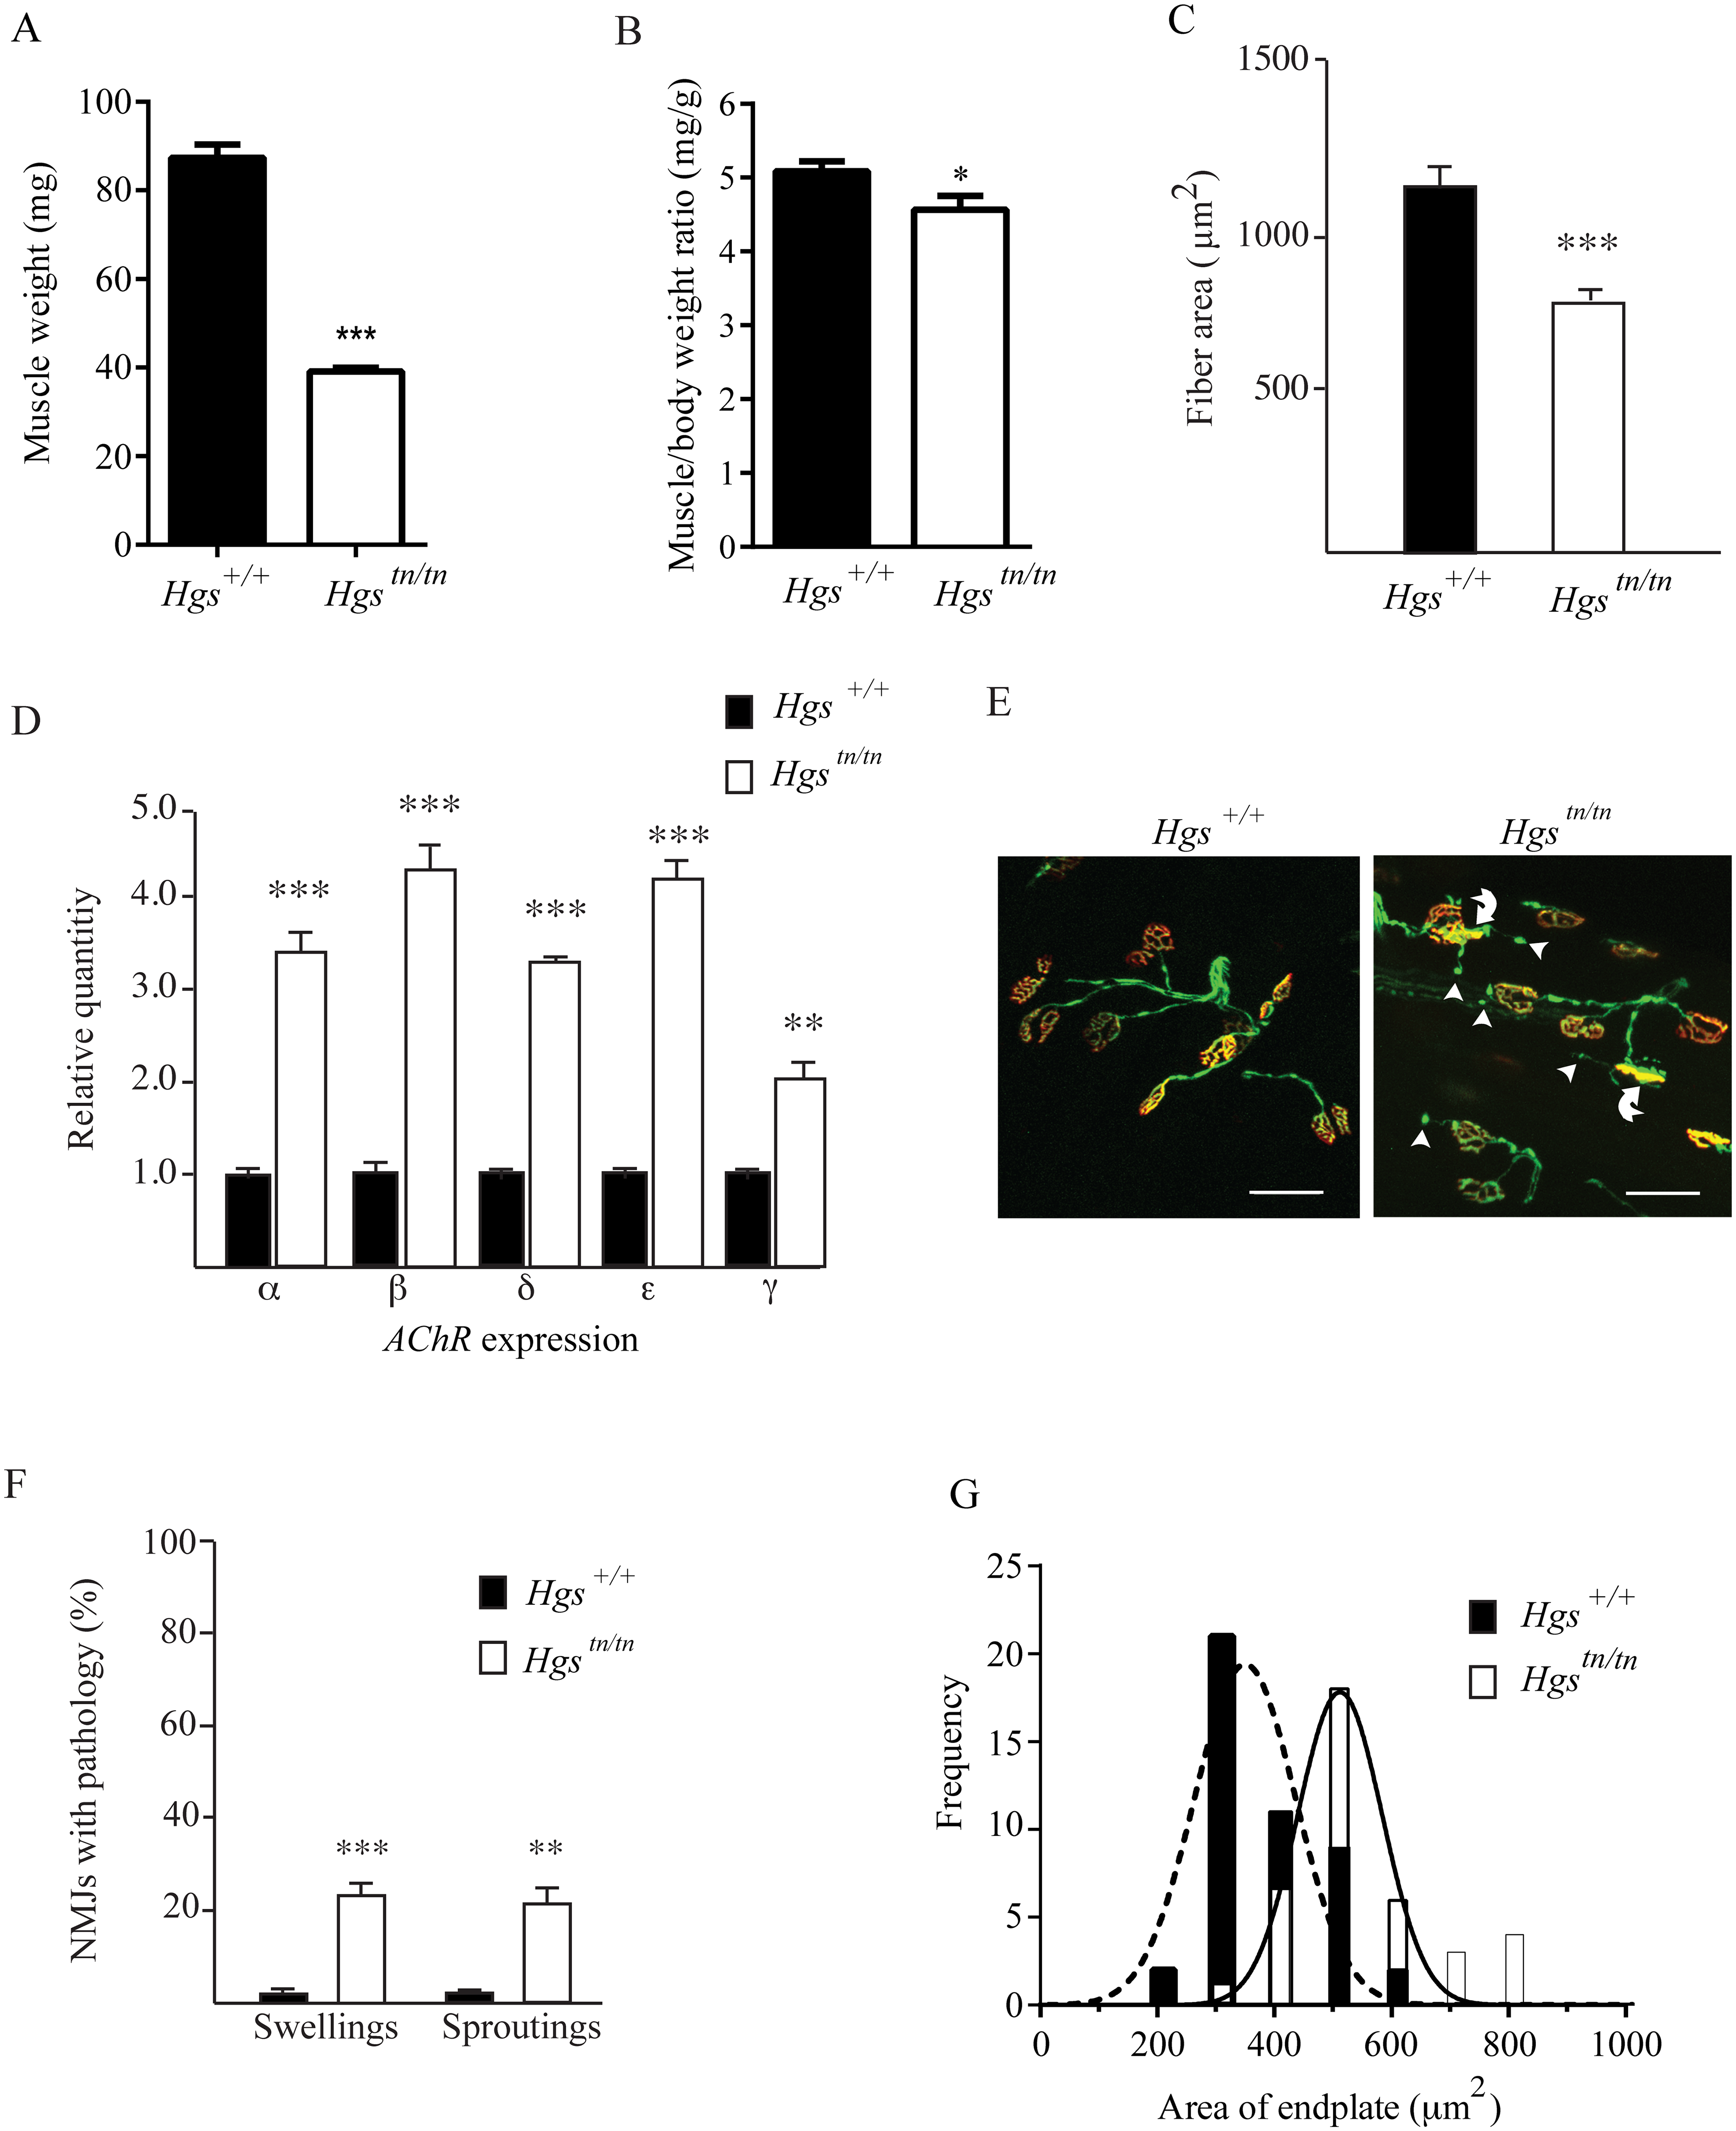 Alterations in muscles and motor endplates in the <i>Hgs</i><sup><i>tn/tn</i></sup> mice.